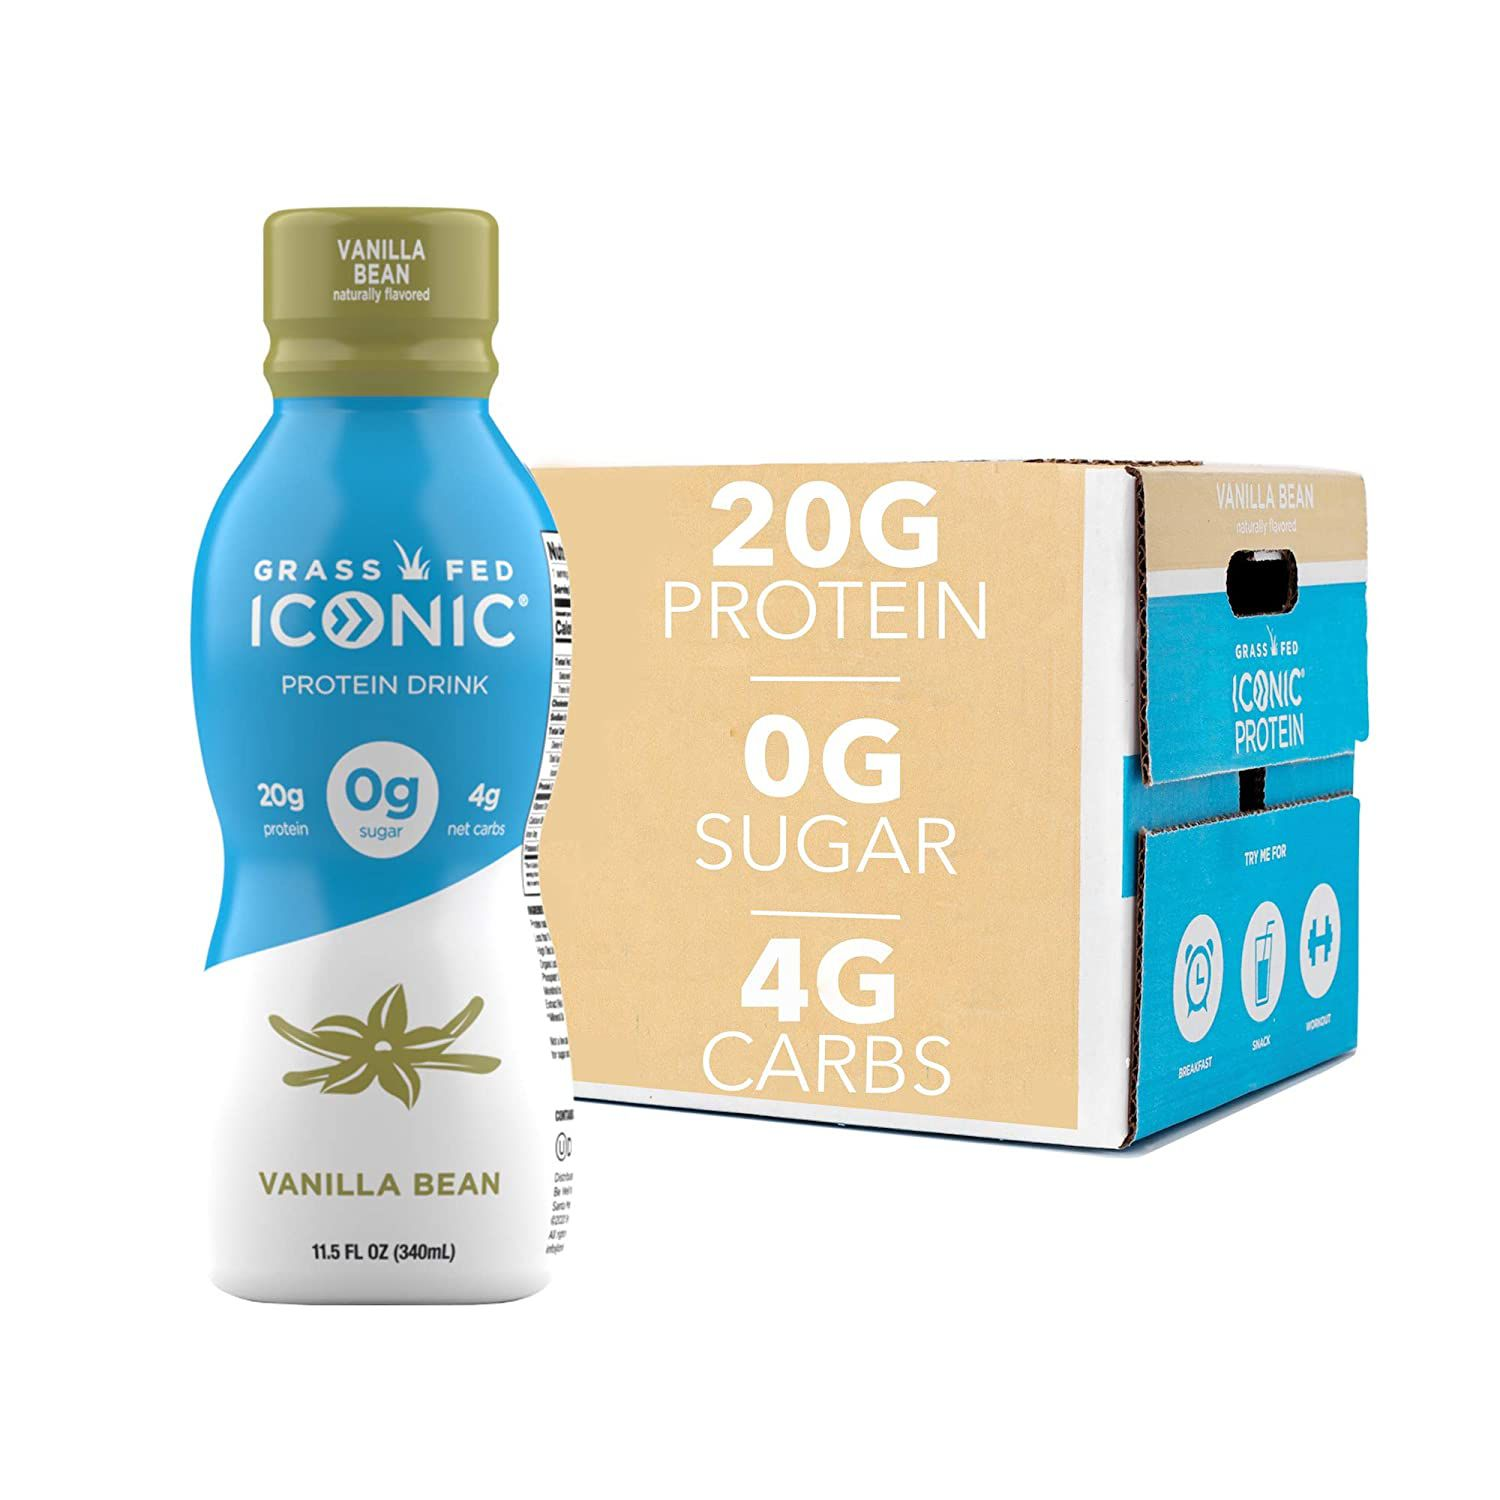 ICONIC Low Carb High Protein Drinks